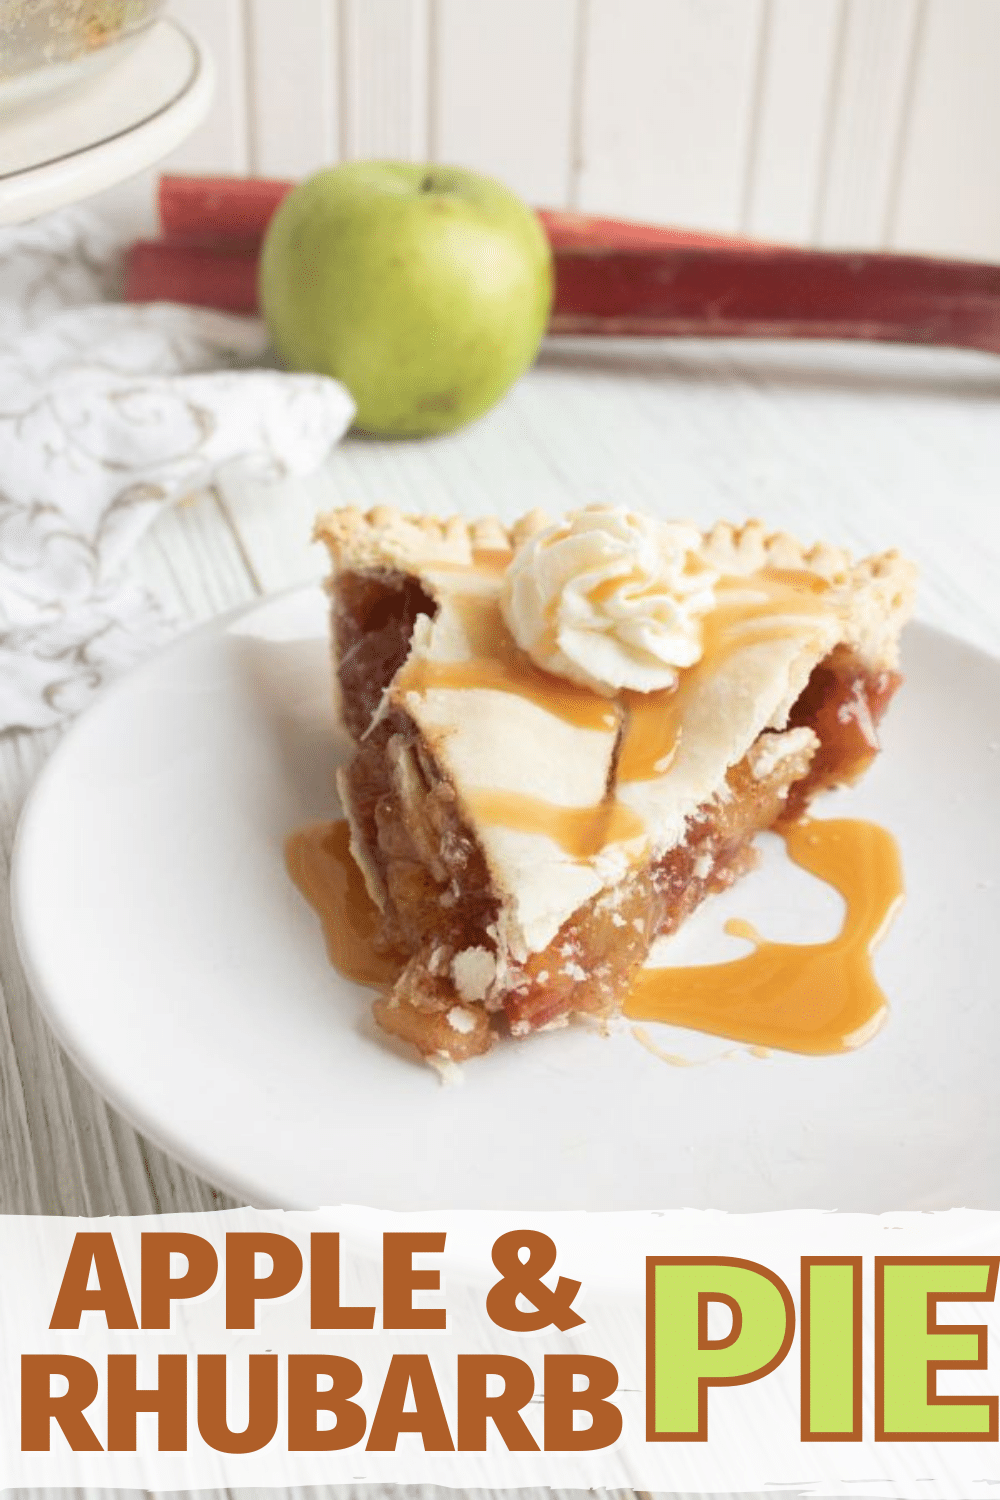 Apple and Rhubarb Pie is the perfect dessert for fall and Thanksgiving. This delicious pie is full of fruit and flavor and looks amazing on your table. #apples #rhubarb #pie via @wondermomwannab